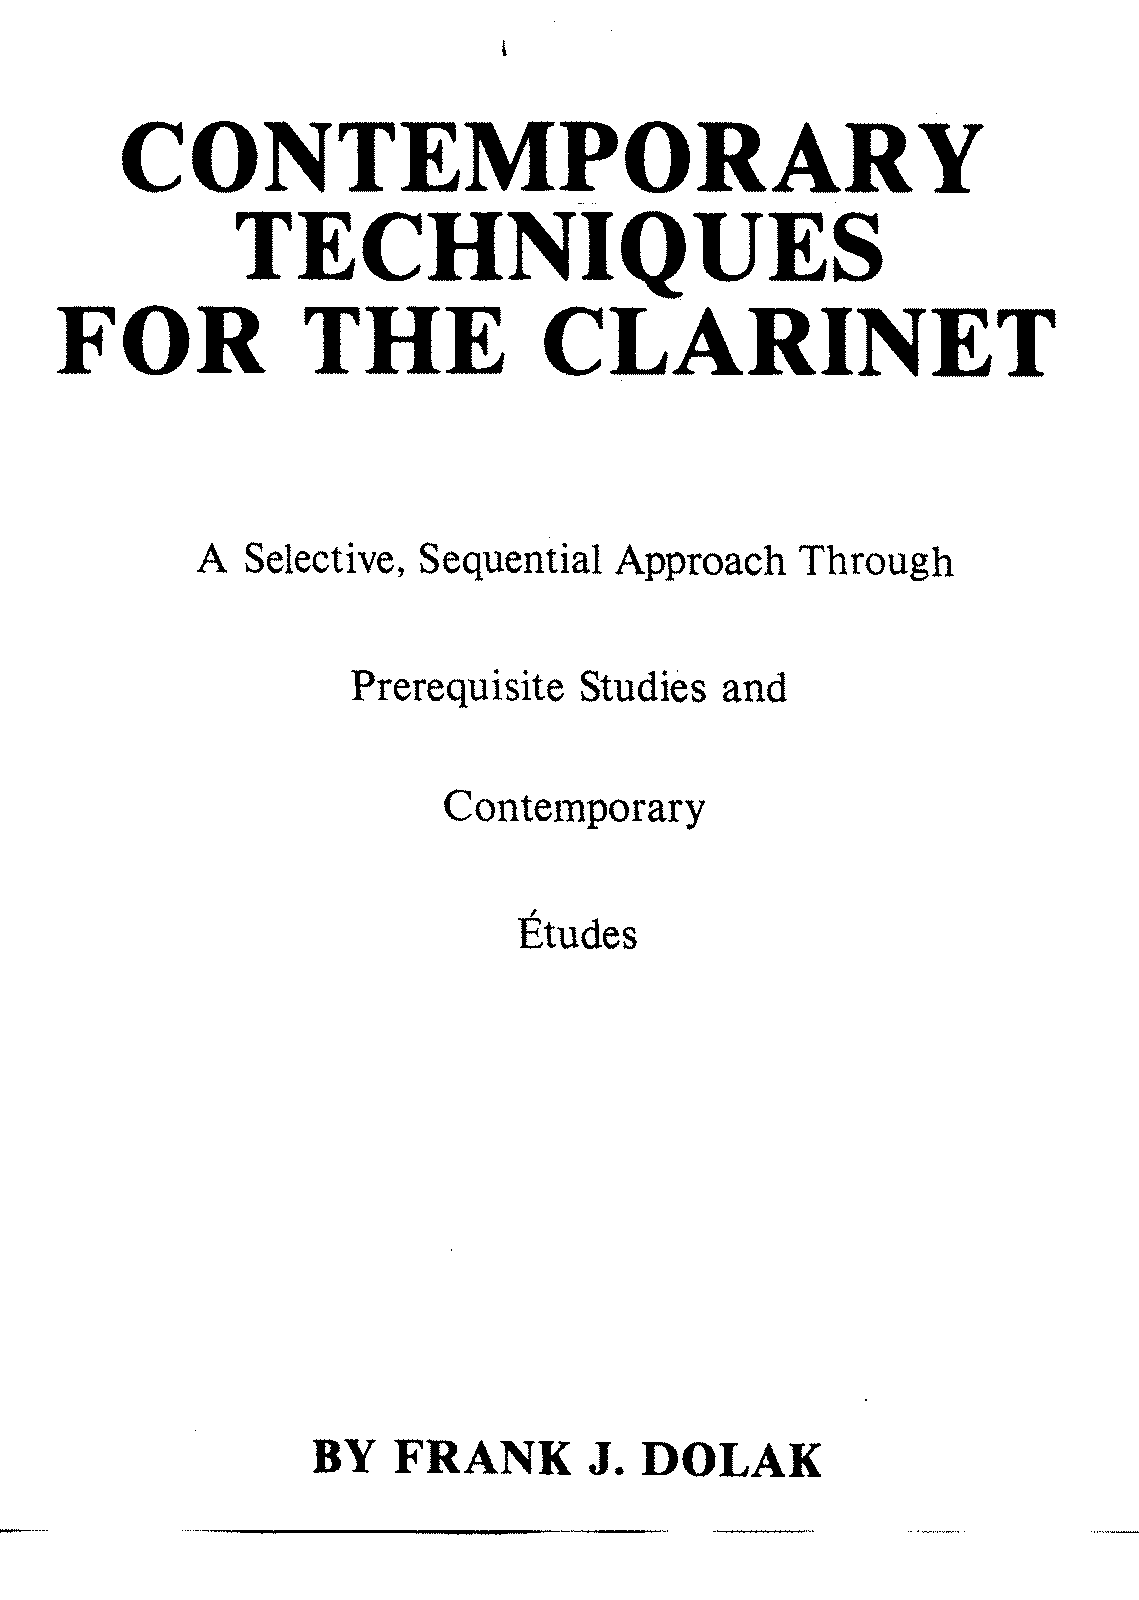 PMLP193679-Contemporary Techniques for the Clarinet 1980 Fritz Dolak.pdf